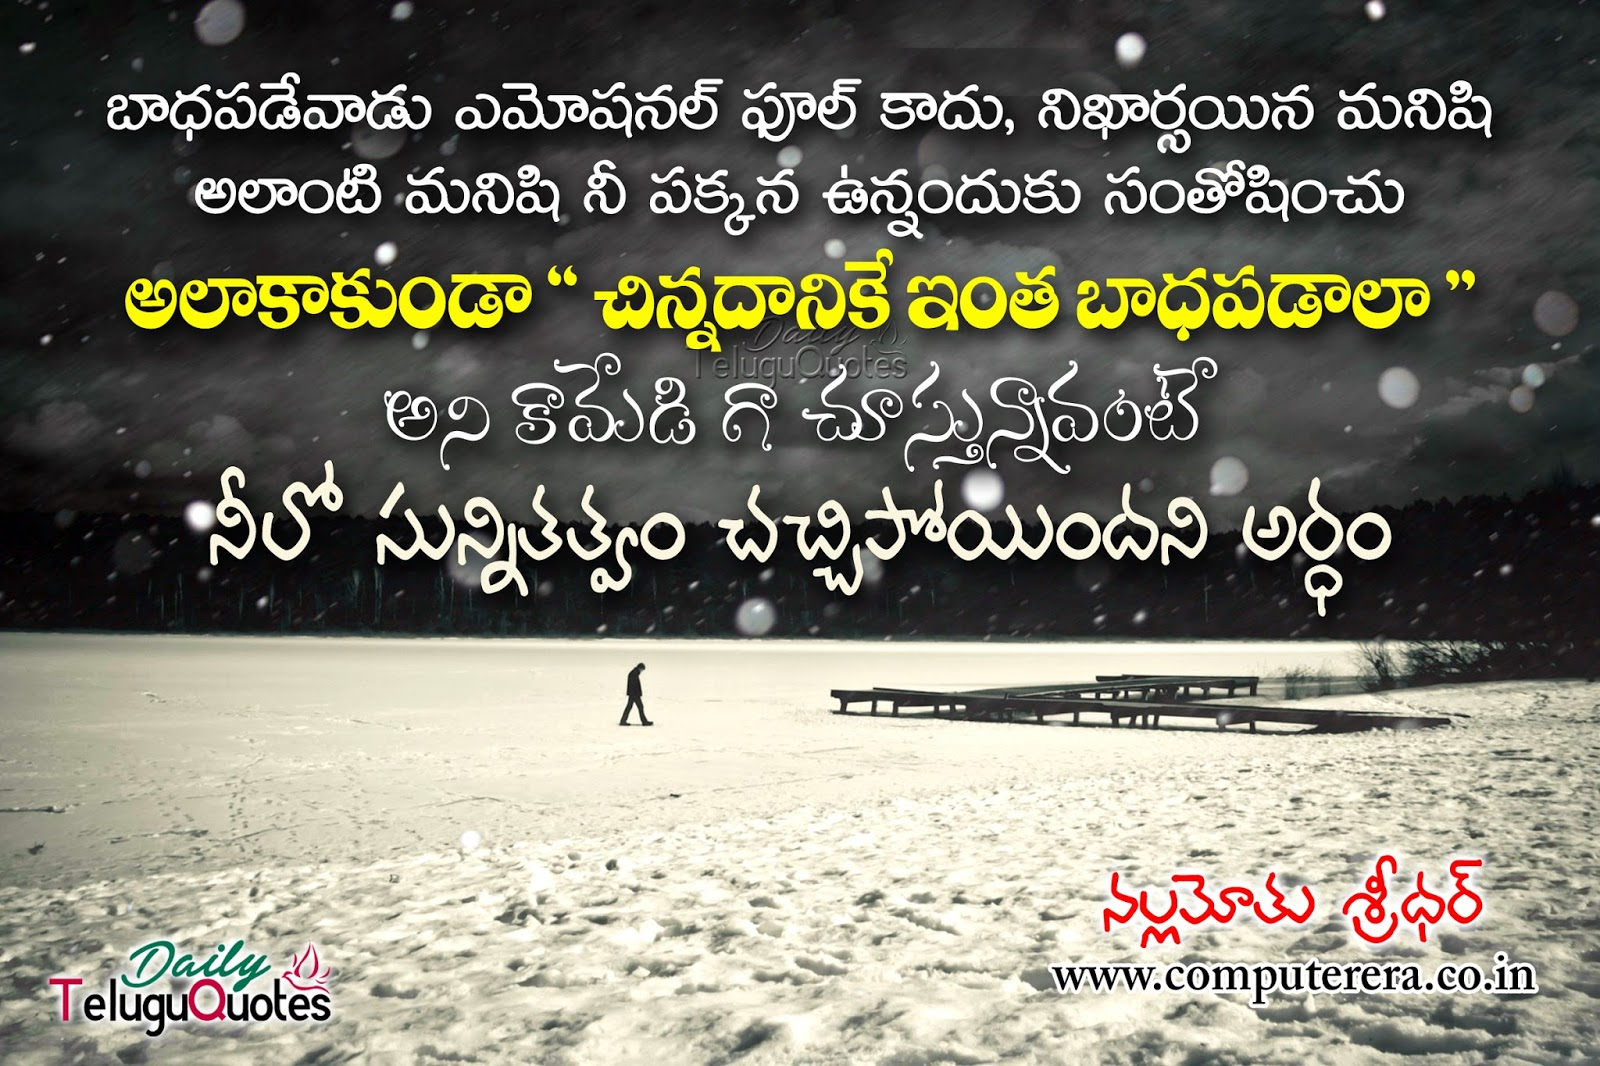 Motivational Messages Motivational Life Emotions Telugu Quotes And Messages.